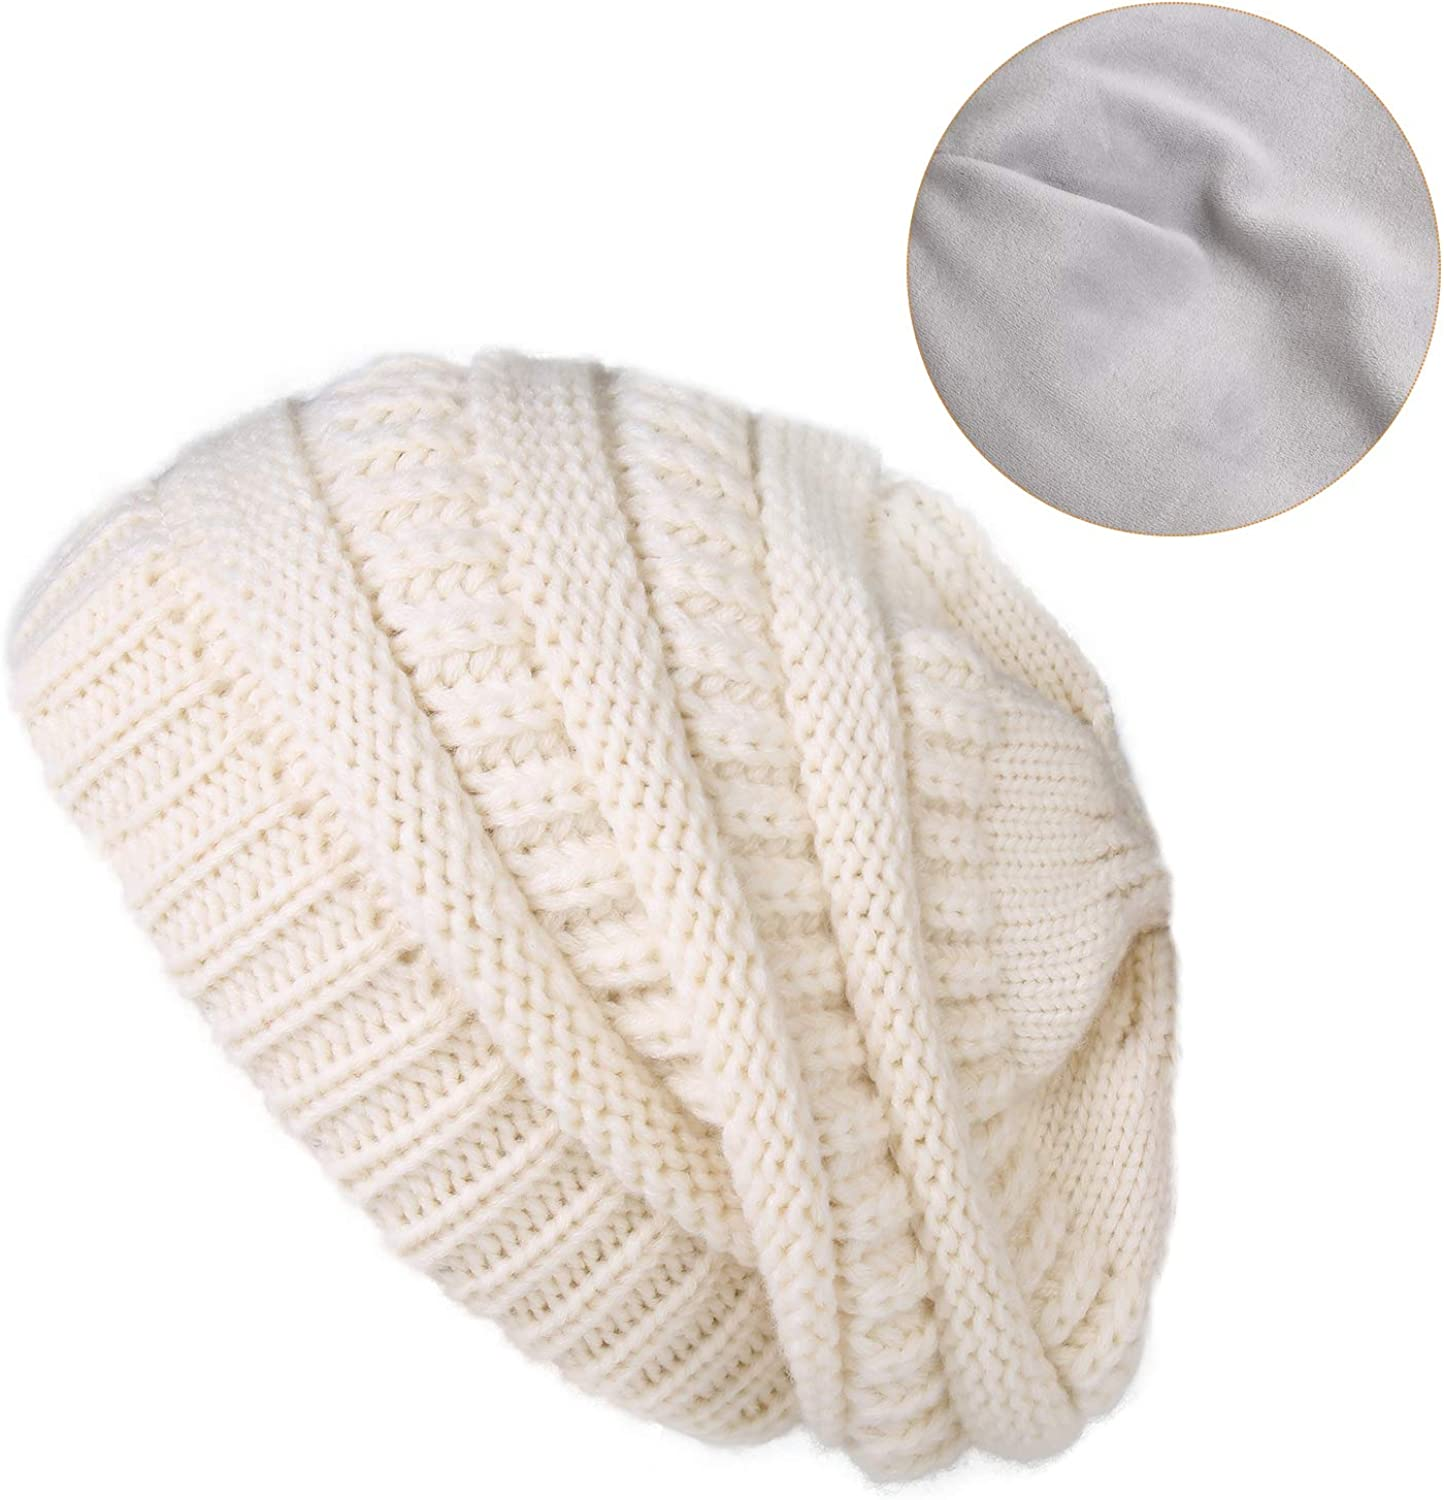 camptrace Winter Hats for Women Knit Slouchy Hat Warm Soft Fleece Lined Beanie for Women for Canada